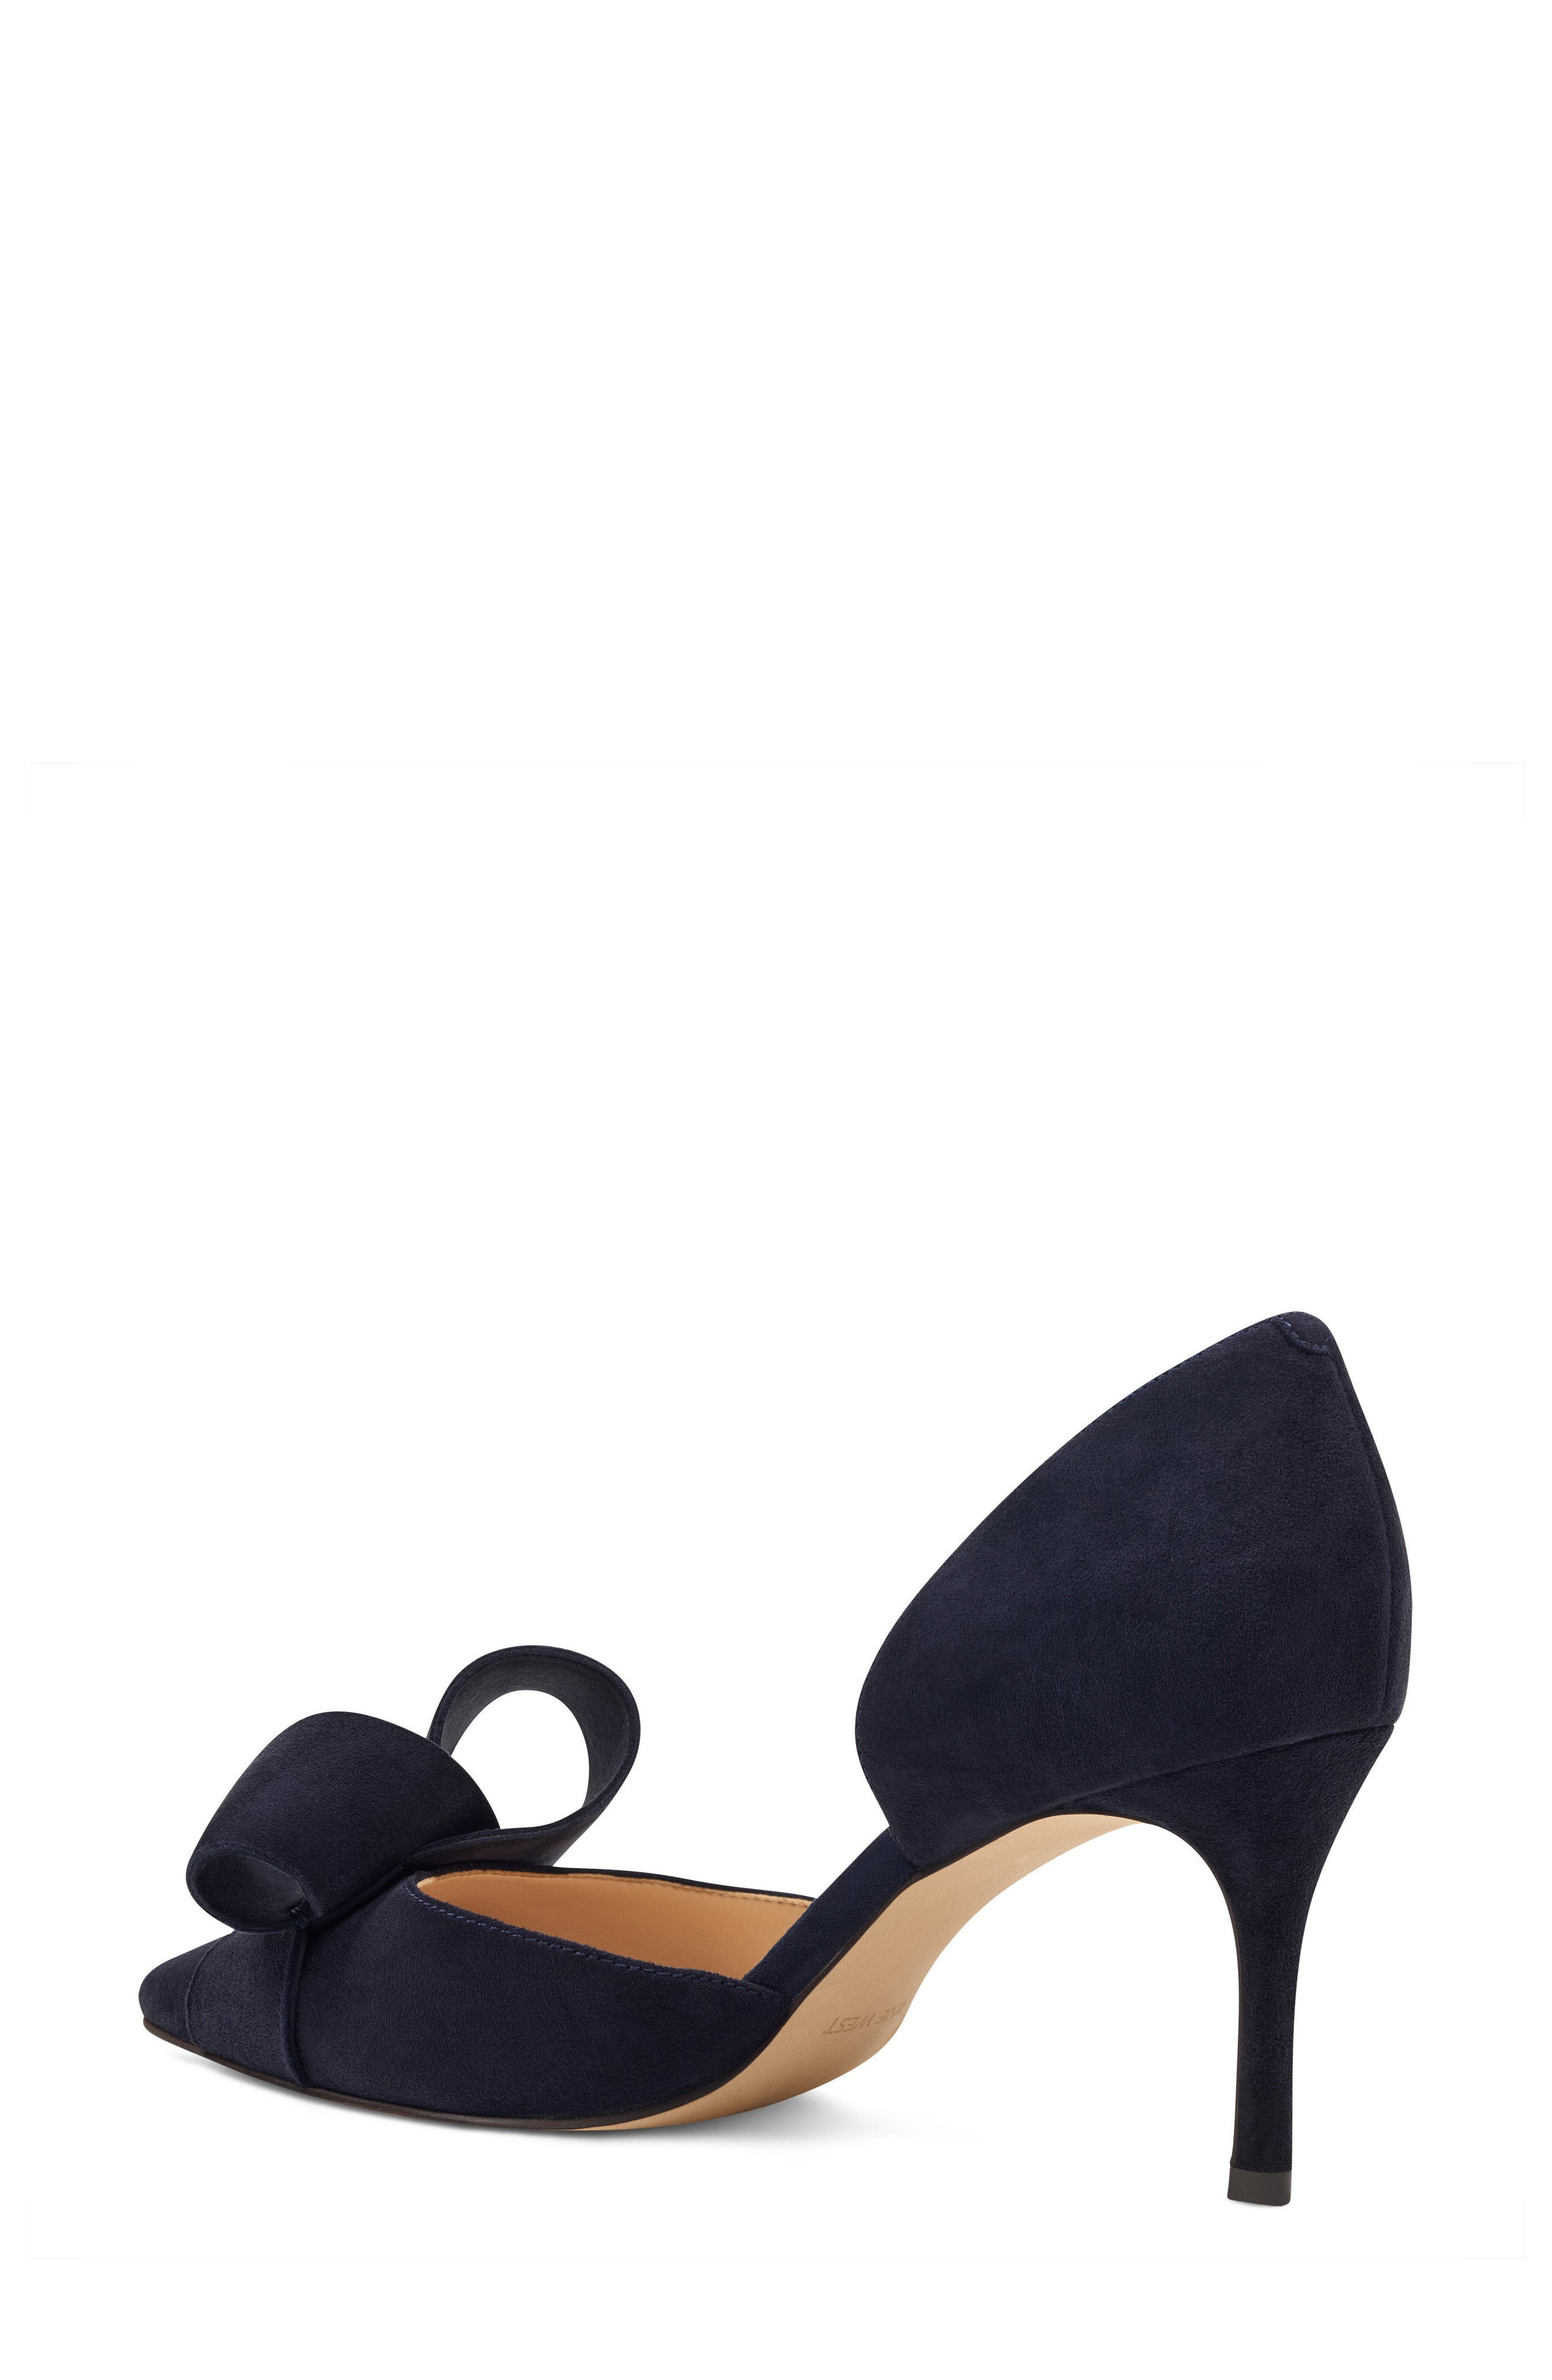 McFally d'Orsay Pump,                             Alternate thumbnail 2, color,                             NAVY SUEDE